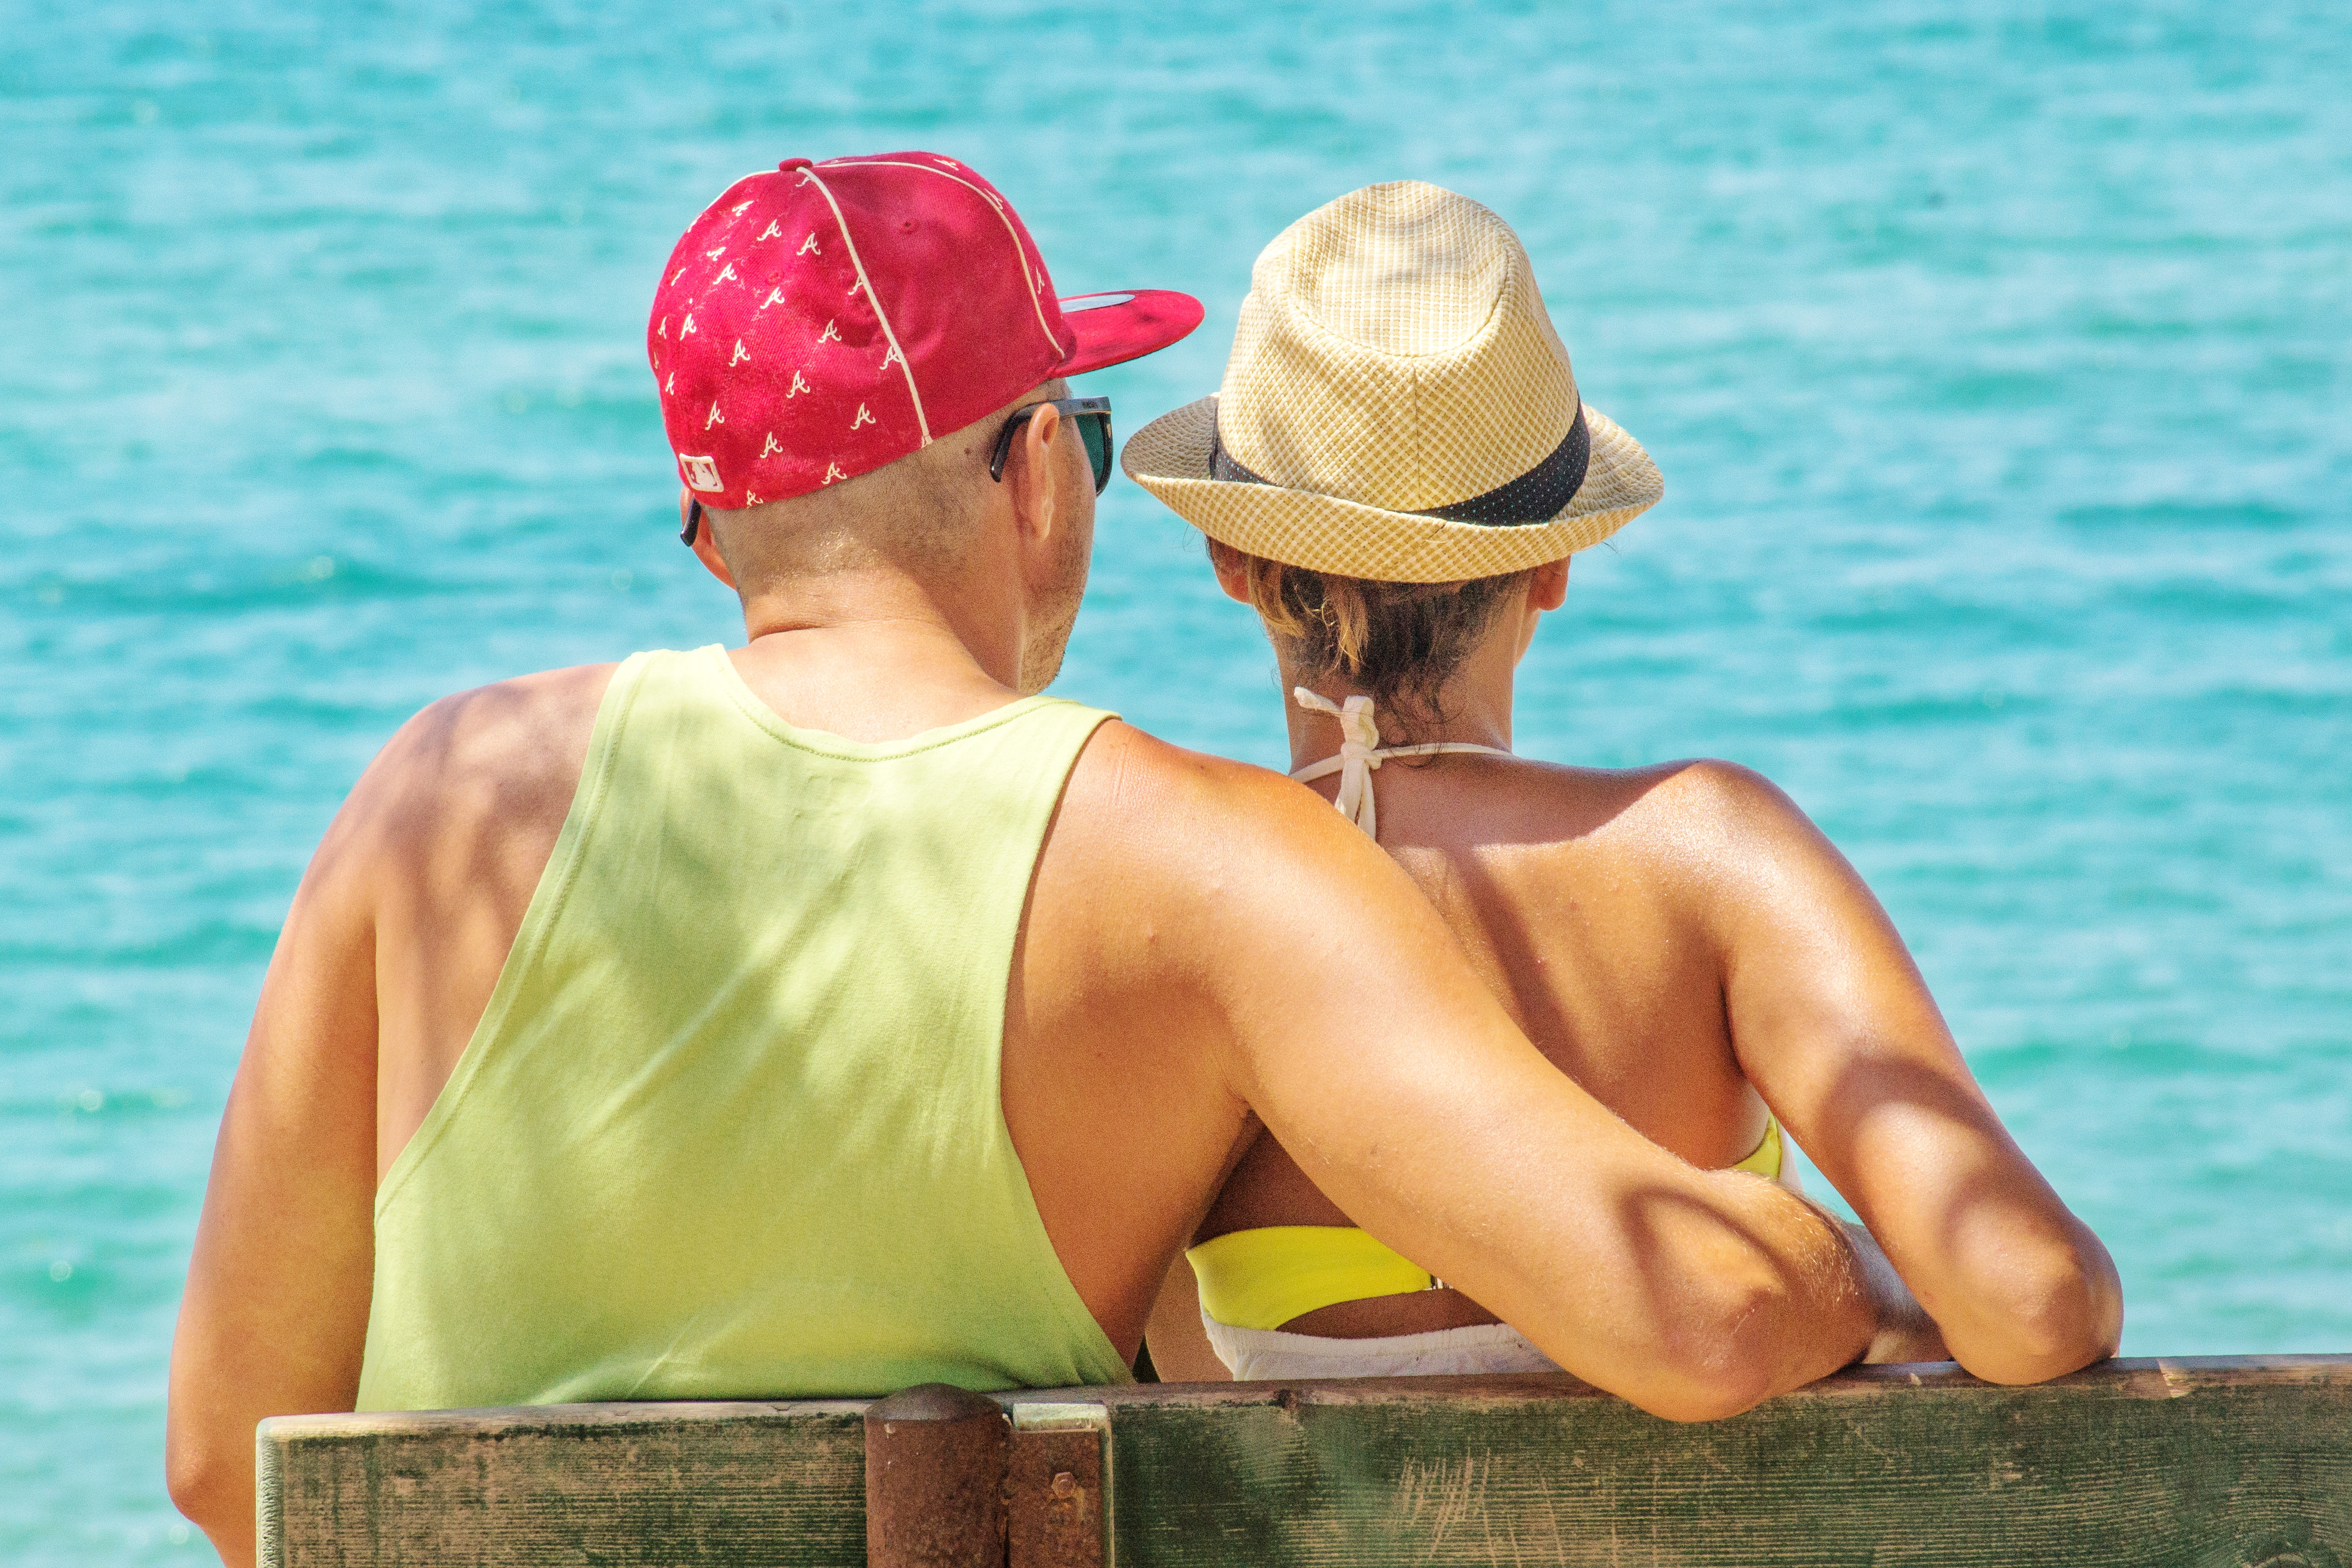 Is Over 50 Too Late To Find A New Relationship?